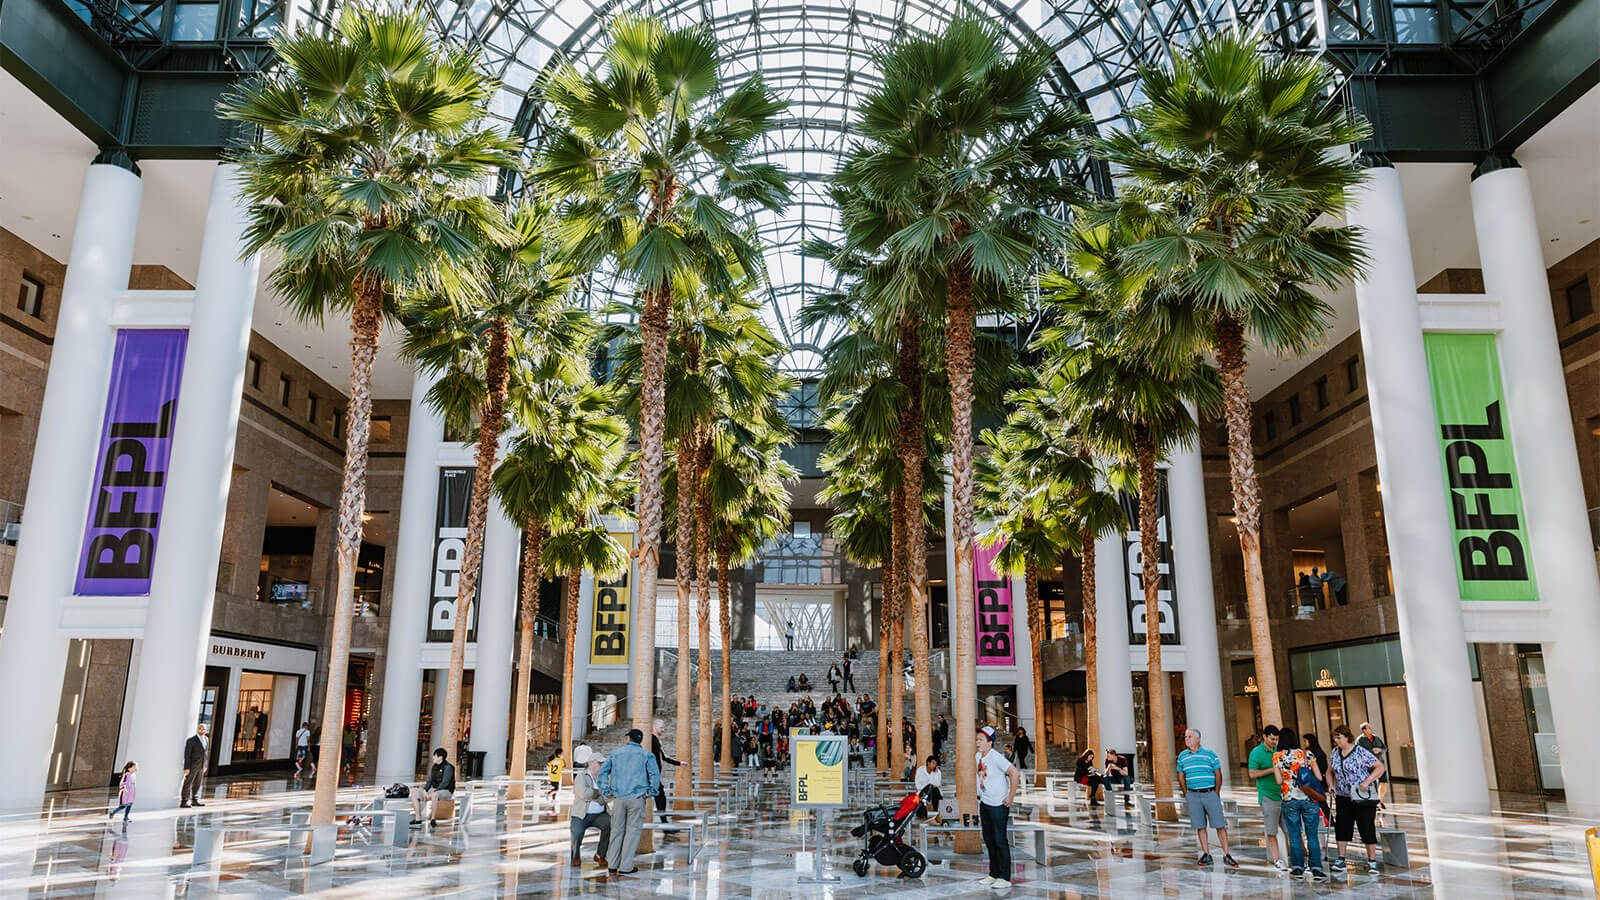 The Winter Garden at BFPL showcasing their giant palm trees and shoppers abound